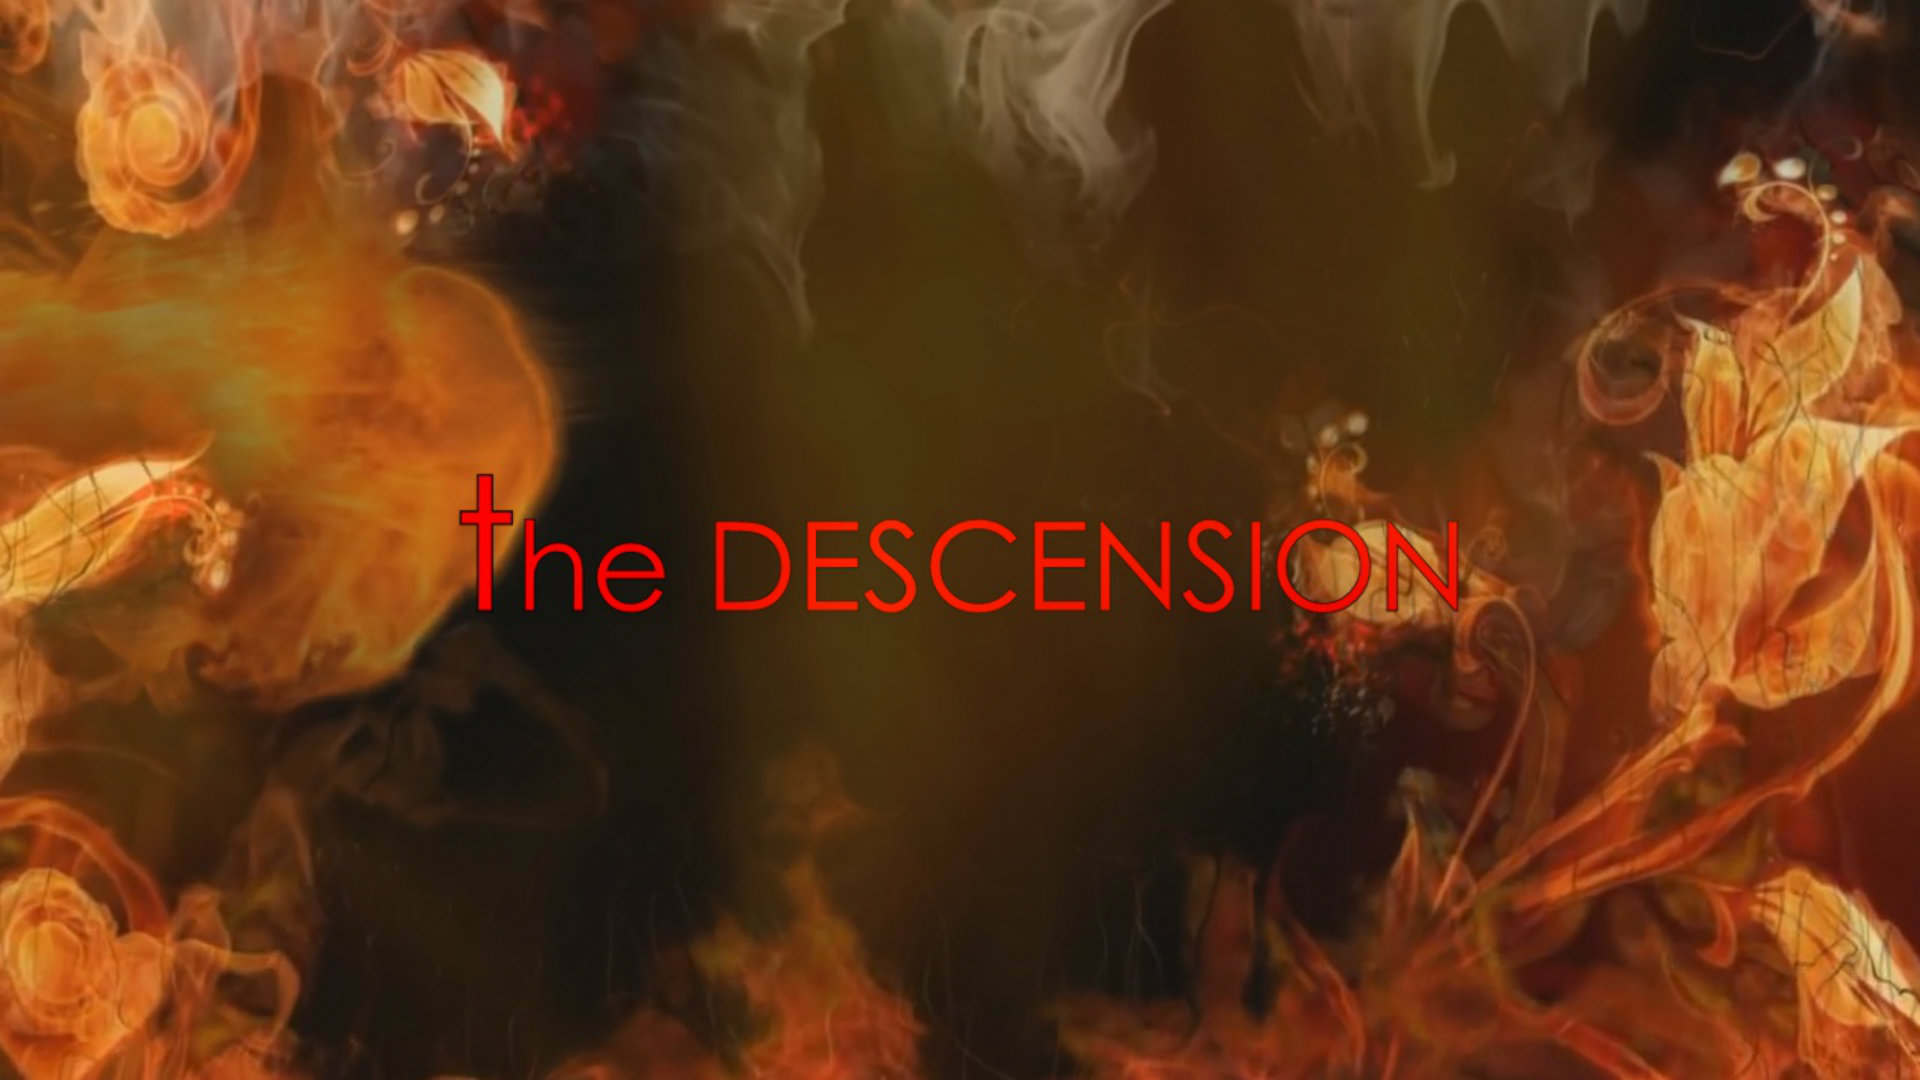 the DESCENSION